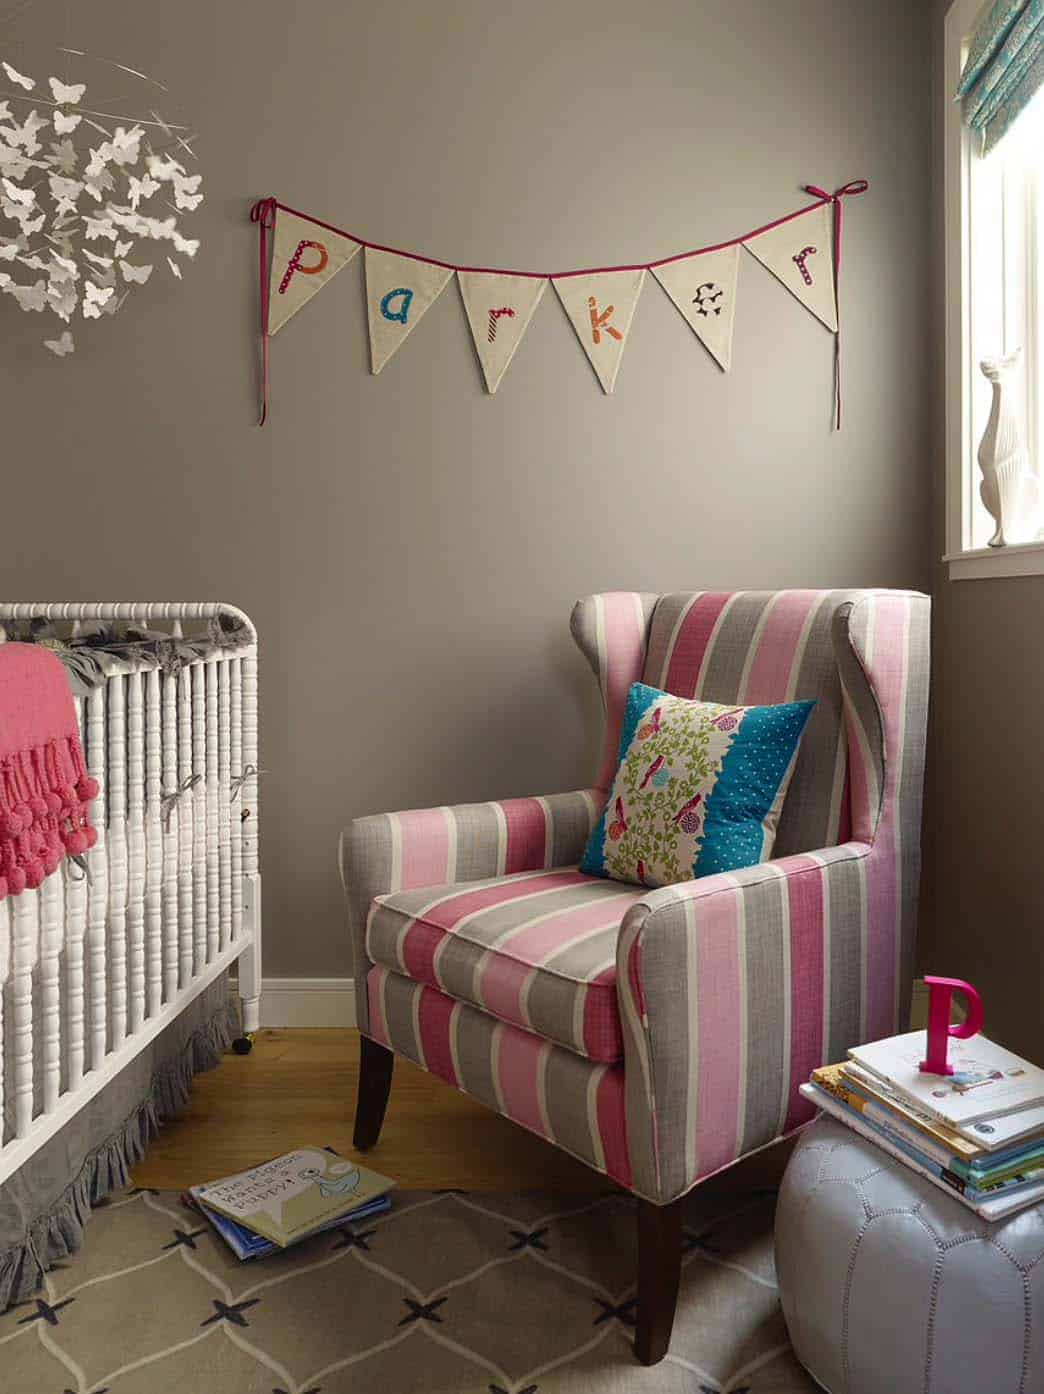 Stylish Nursery Decorating Ideas-32-1 Kindesign